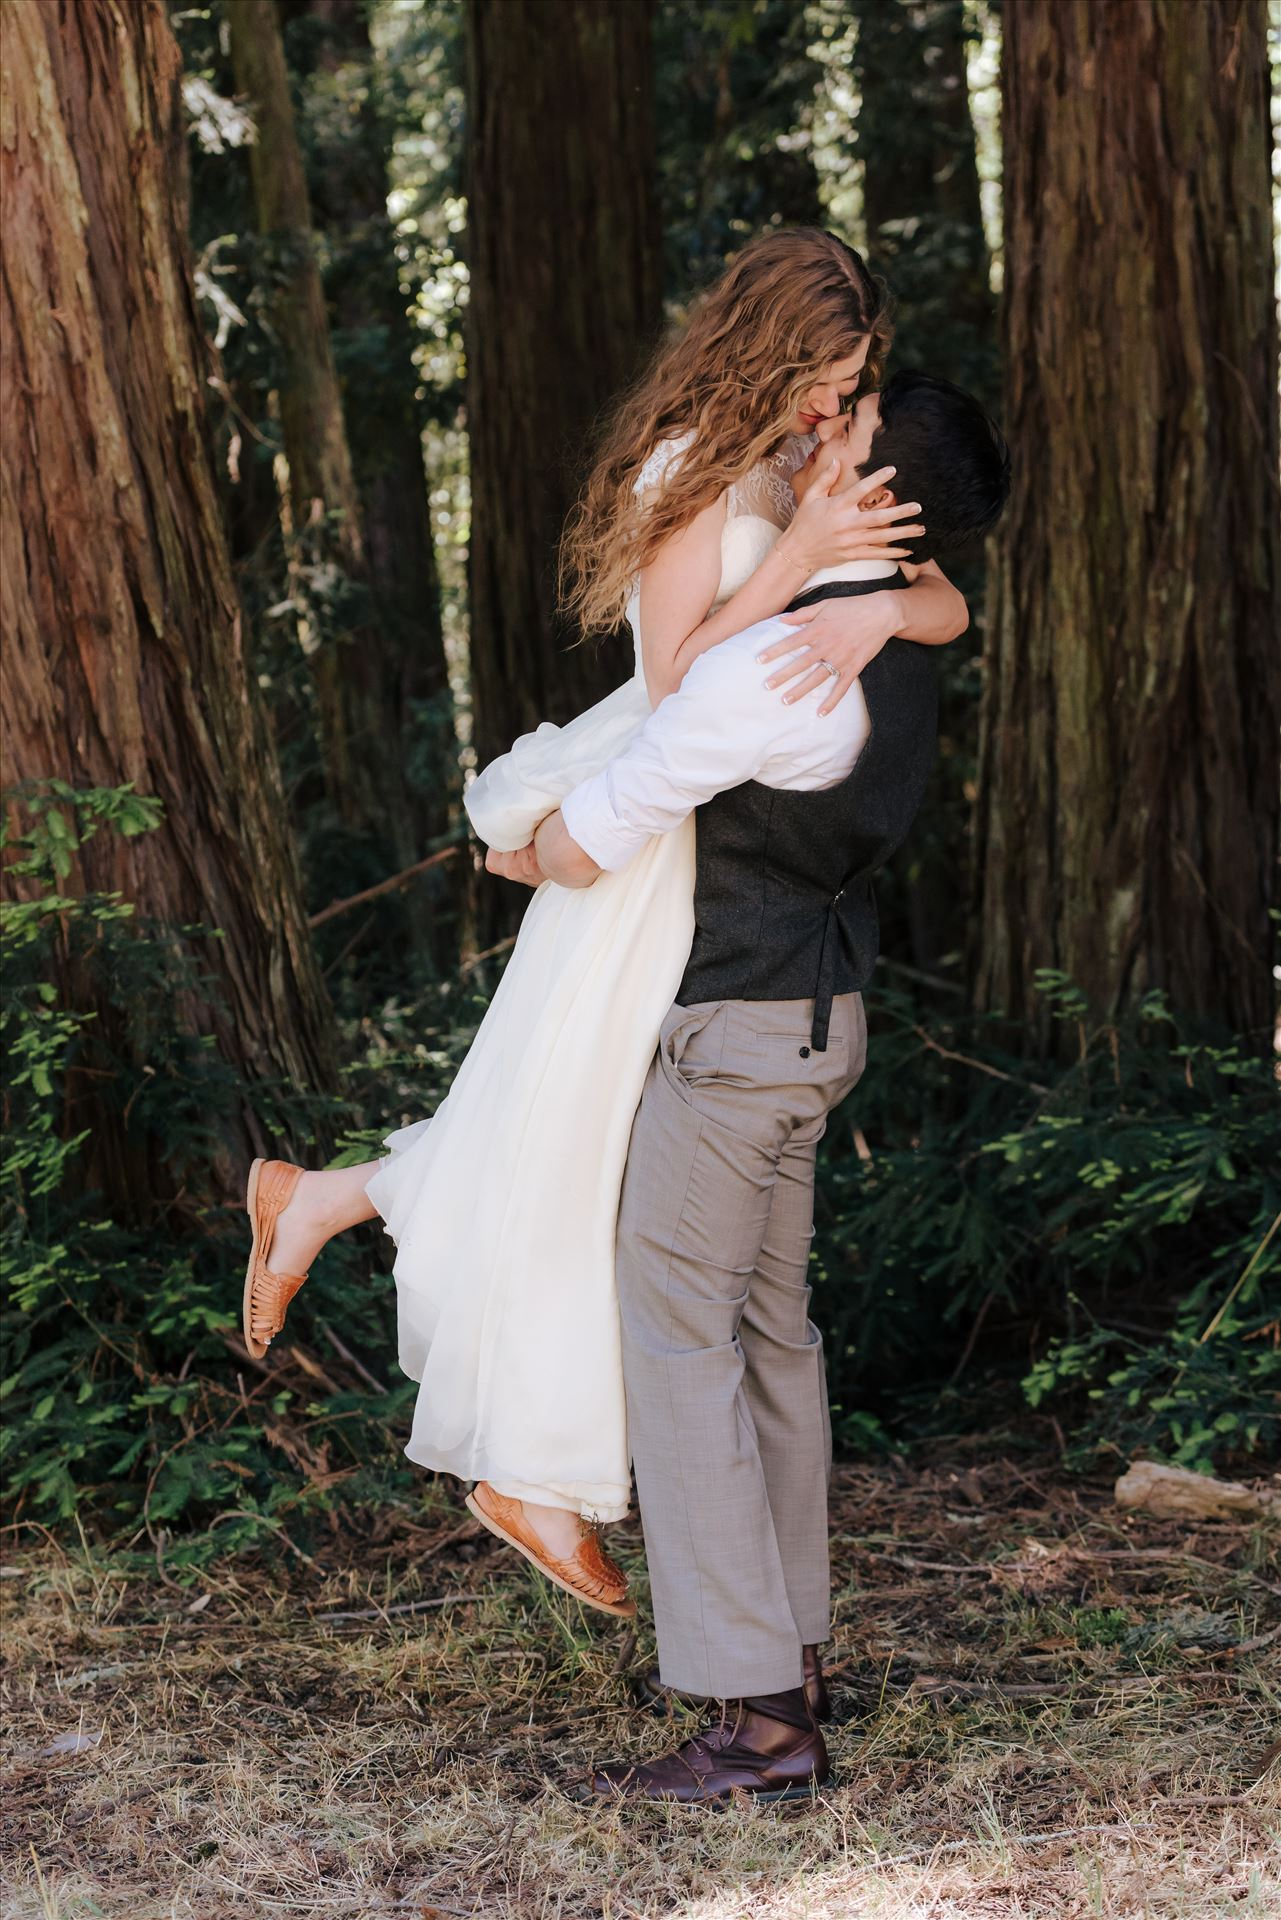 FW-6277.JPGMt Madonna wedding in the redwoods outside of Watsonville, California with a romantic and classic vibe by sarah williams of mirror's edge photography a san luis obispo wedding photographer.  Groom lifts Bride